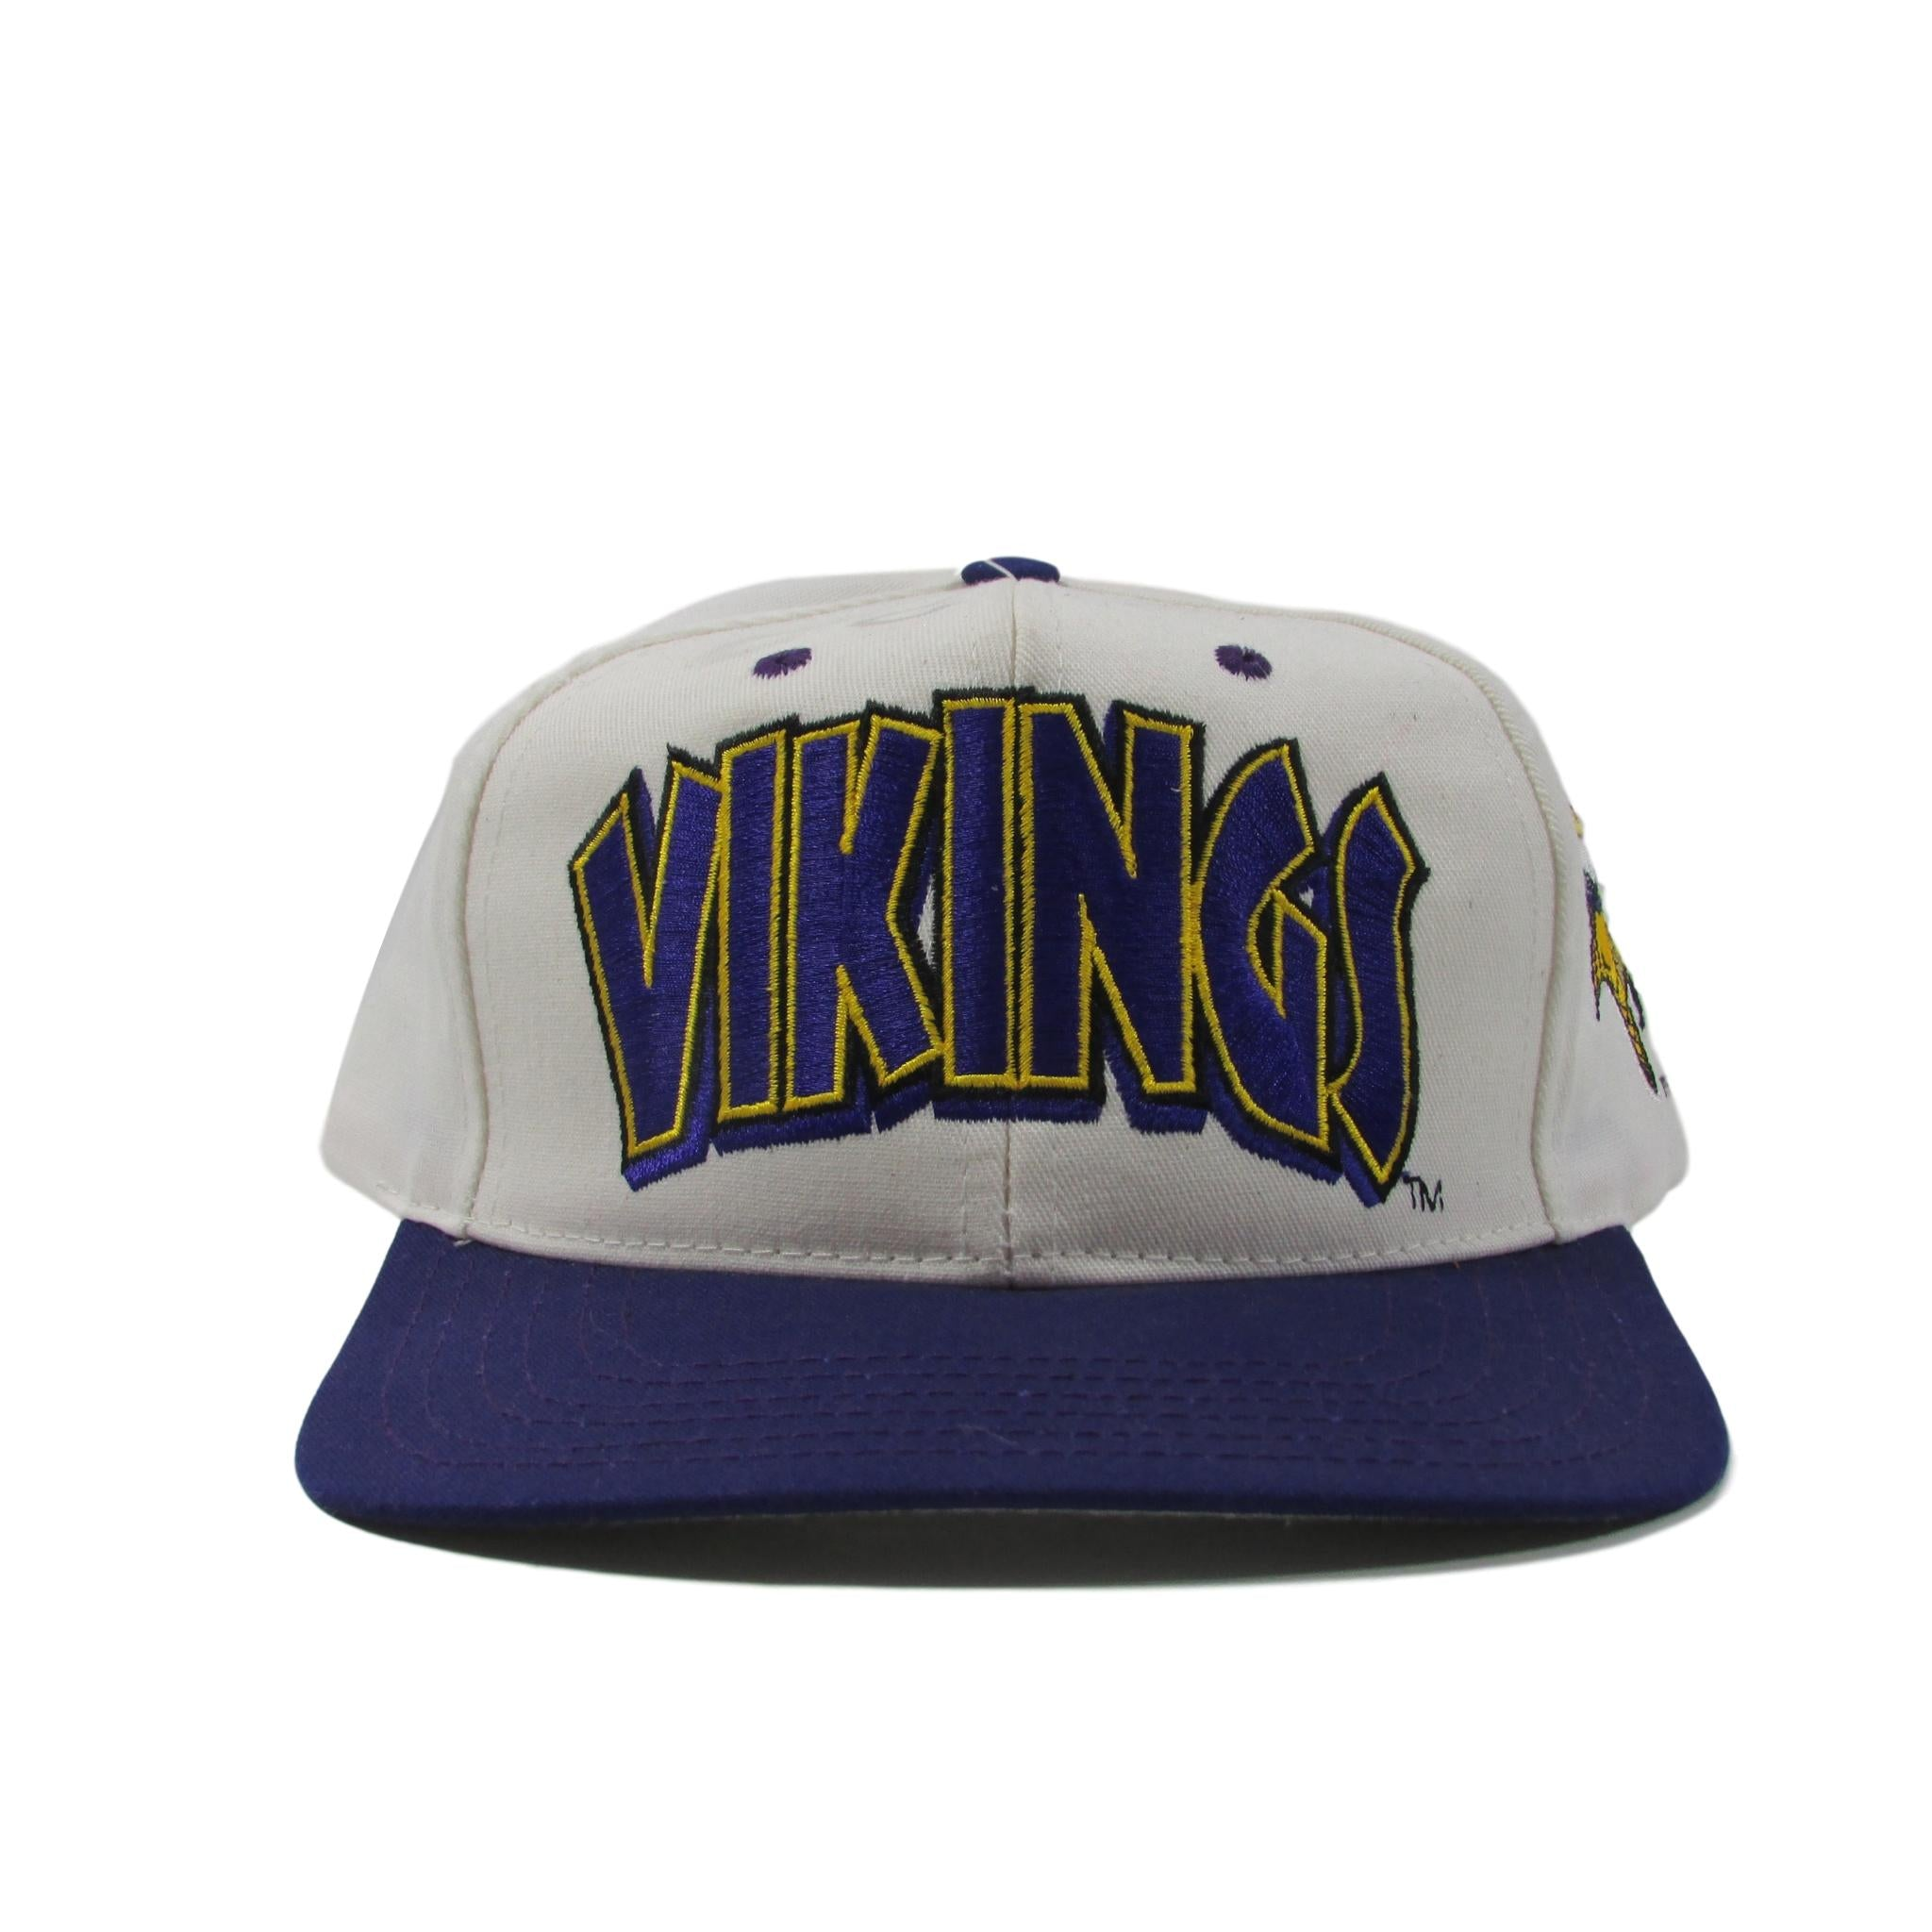 ... amazon minnesota vikings deadstock football white snapback hat team nfl  jpg 2048x2048 vintage minnesota vikings hats 448507596